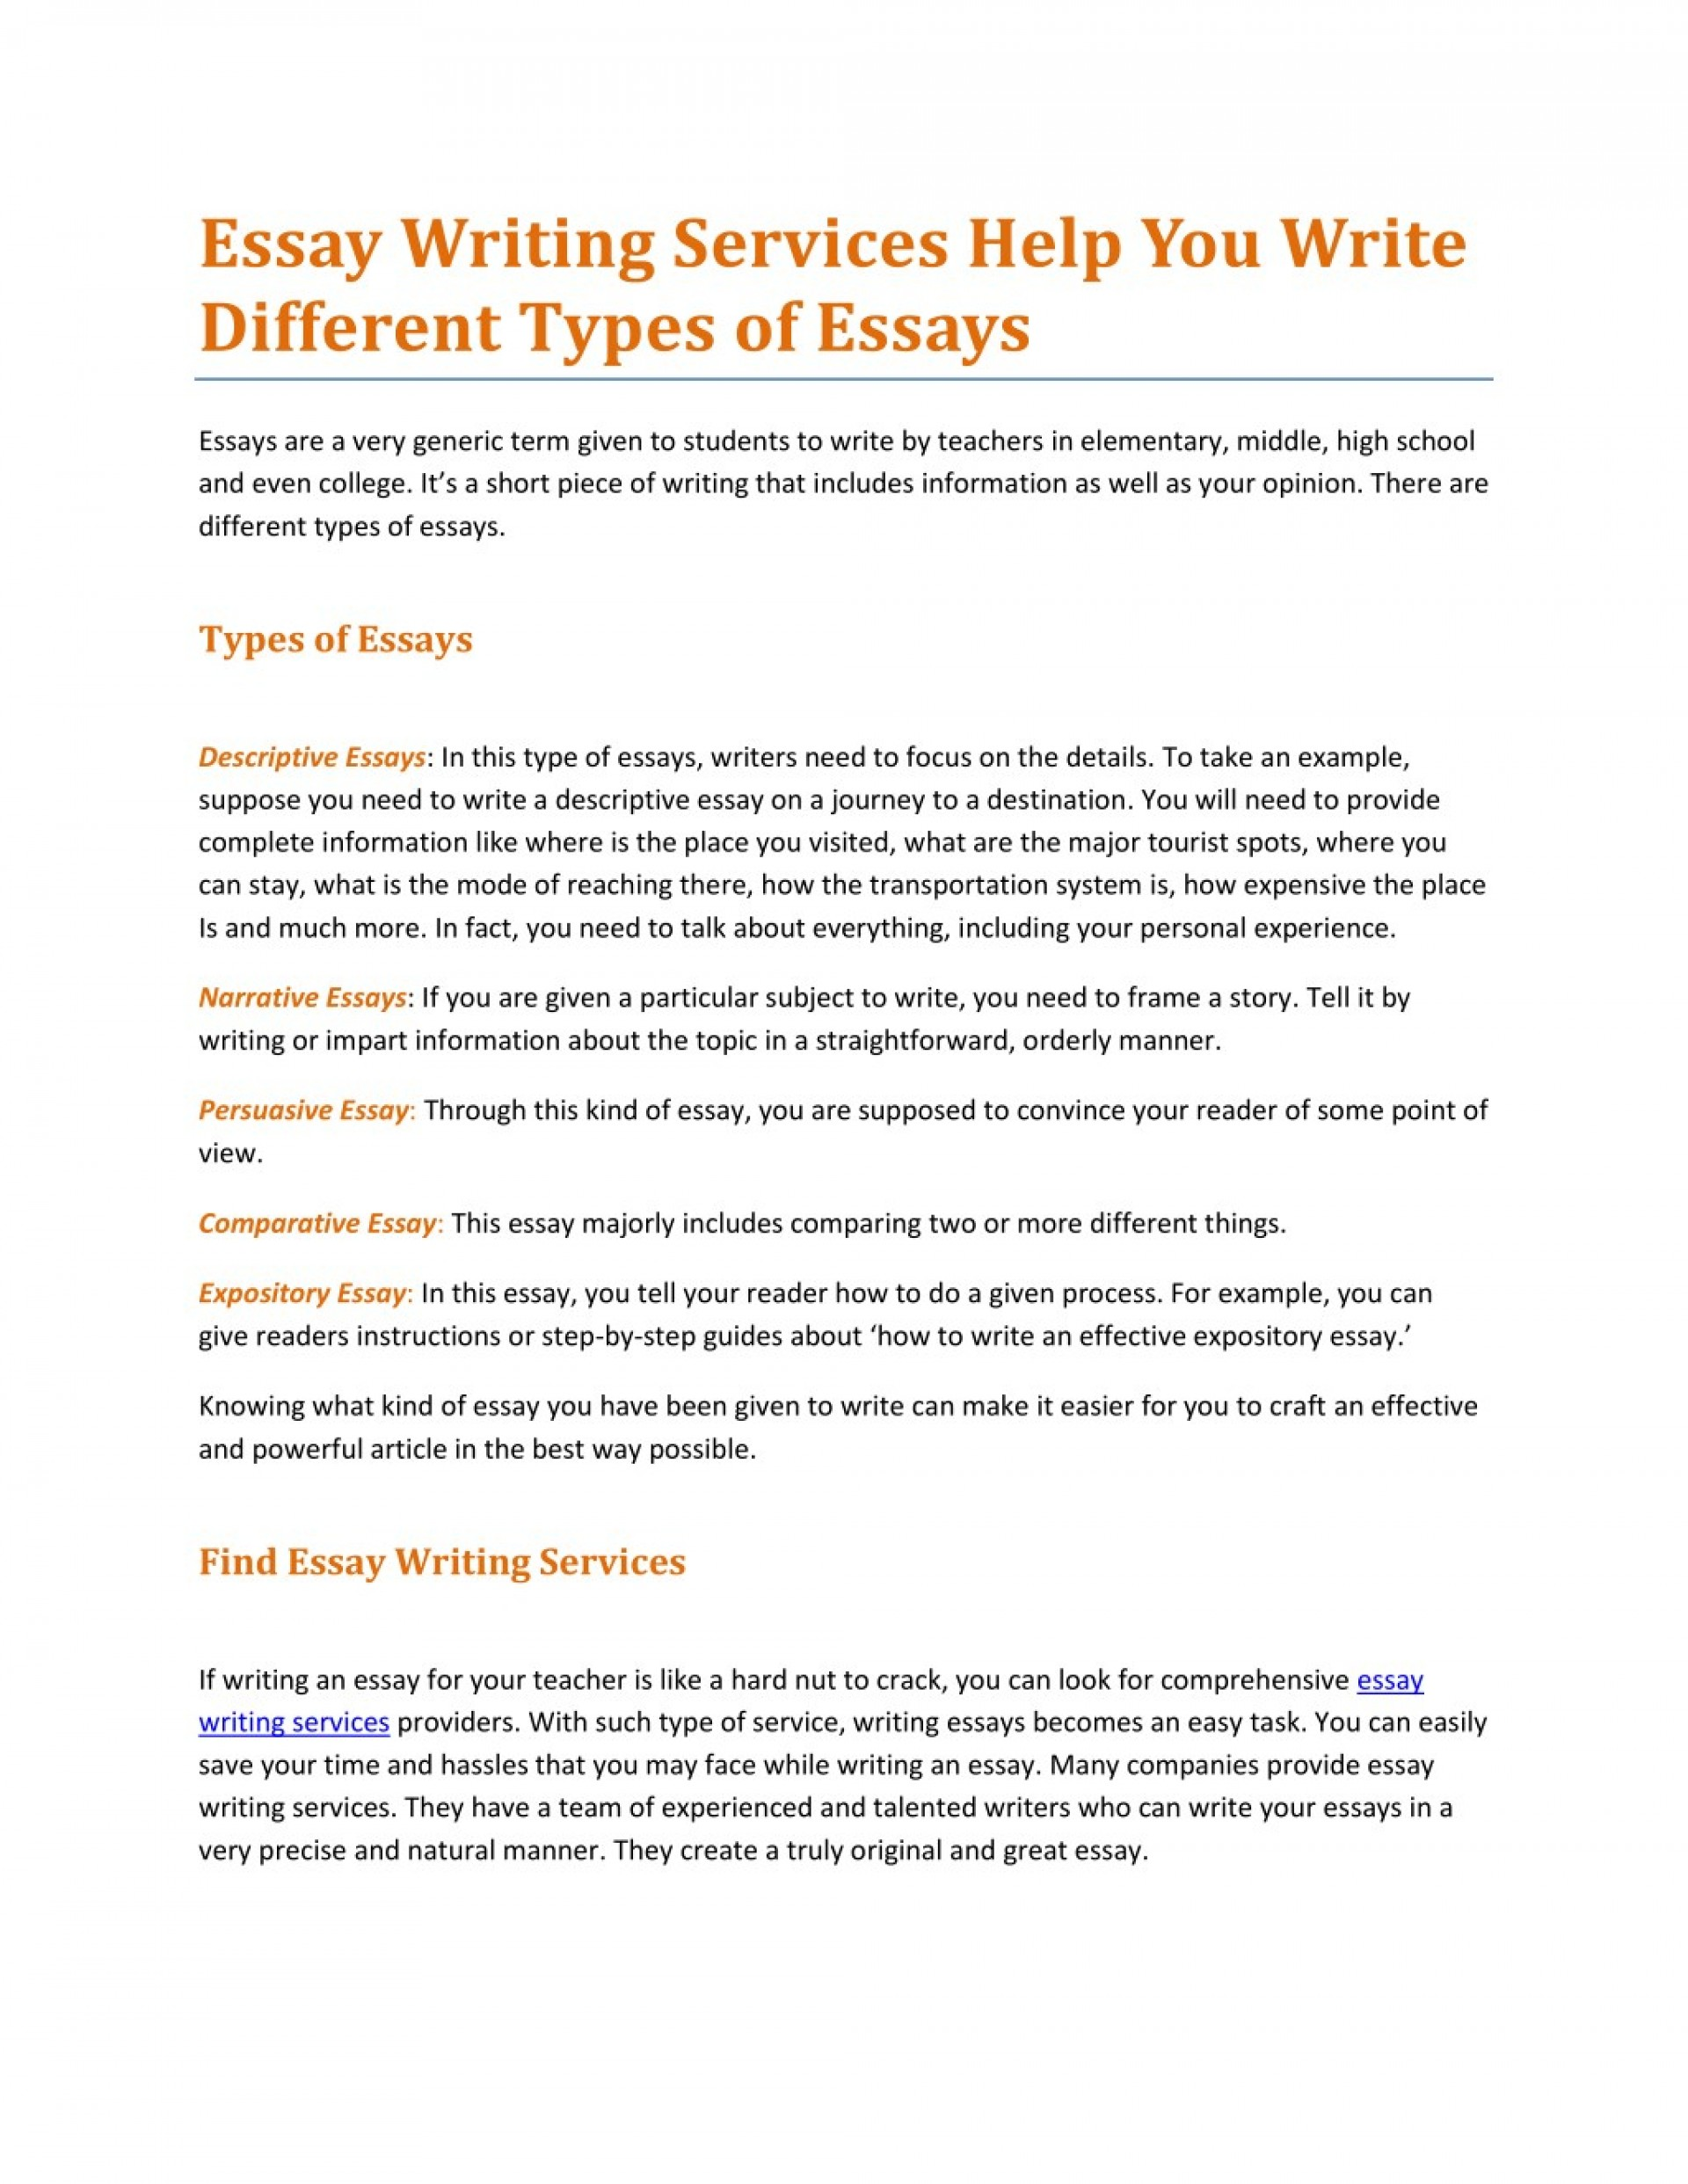 003 Essay About Types Of Students Writing Services Help You Write Different L Breathtaking Classification On College 1920